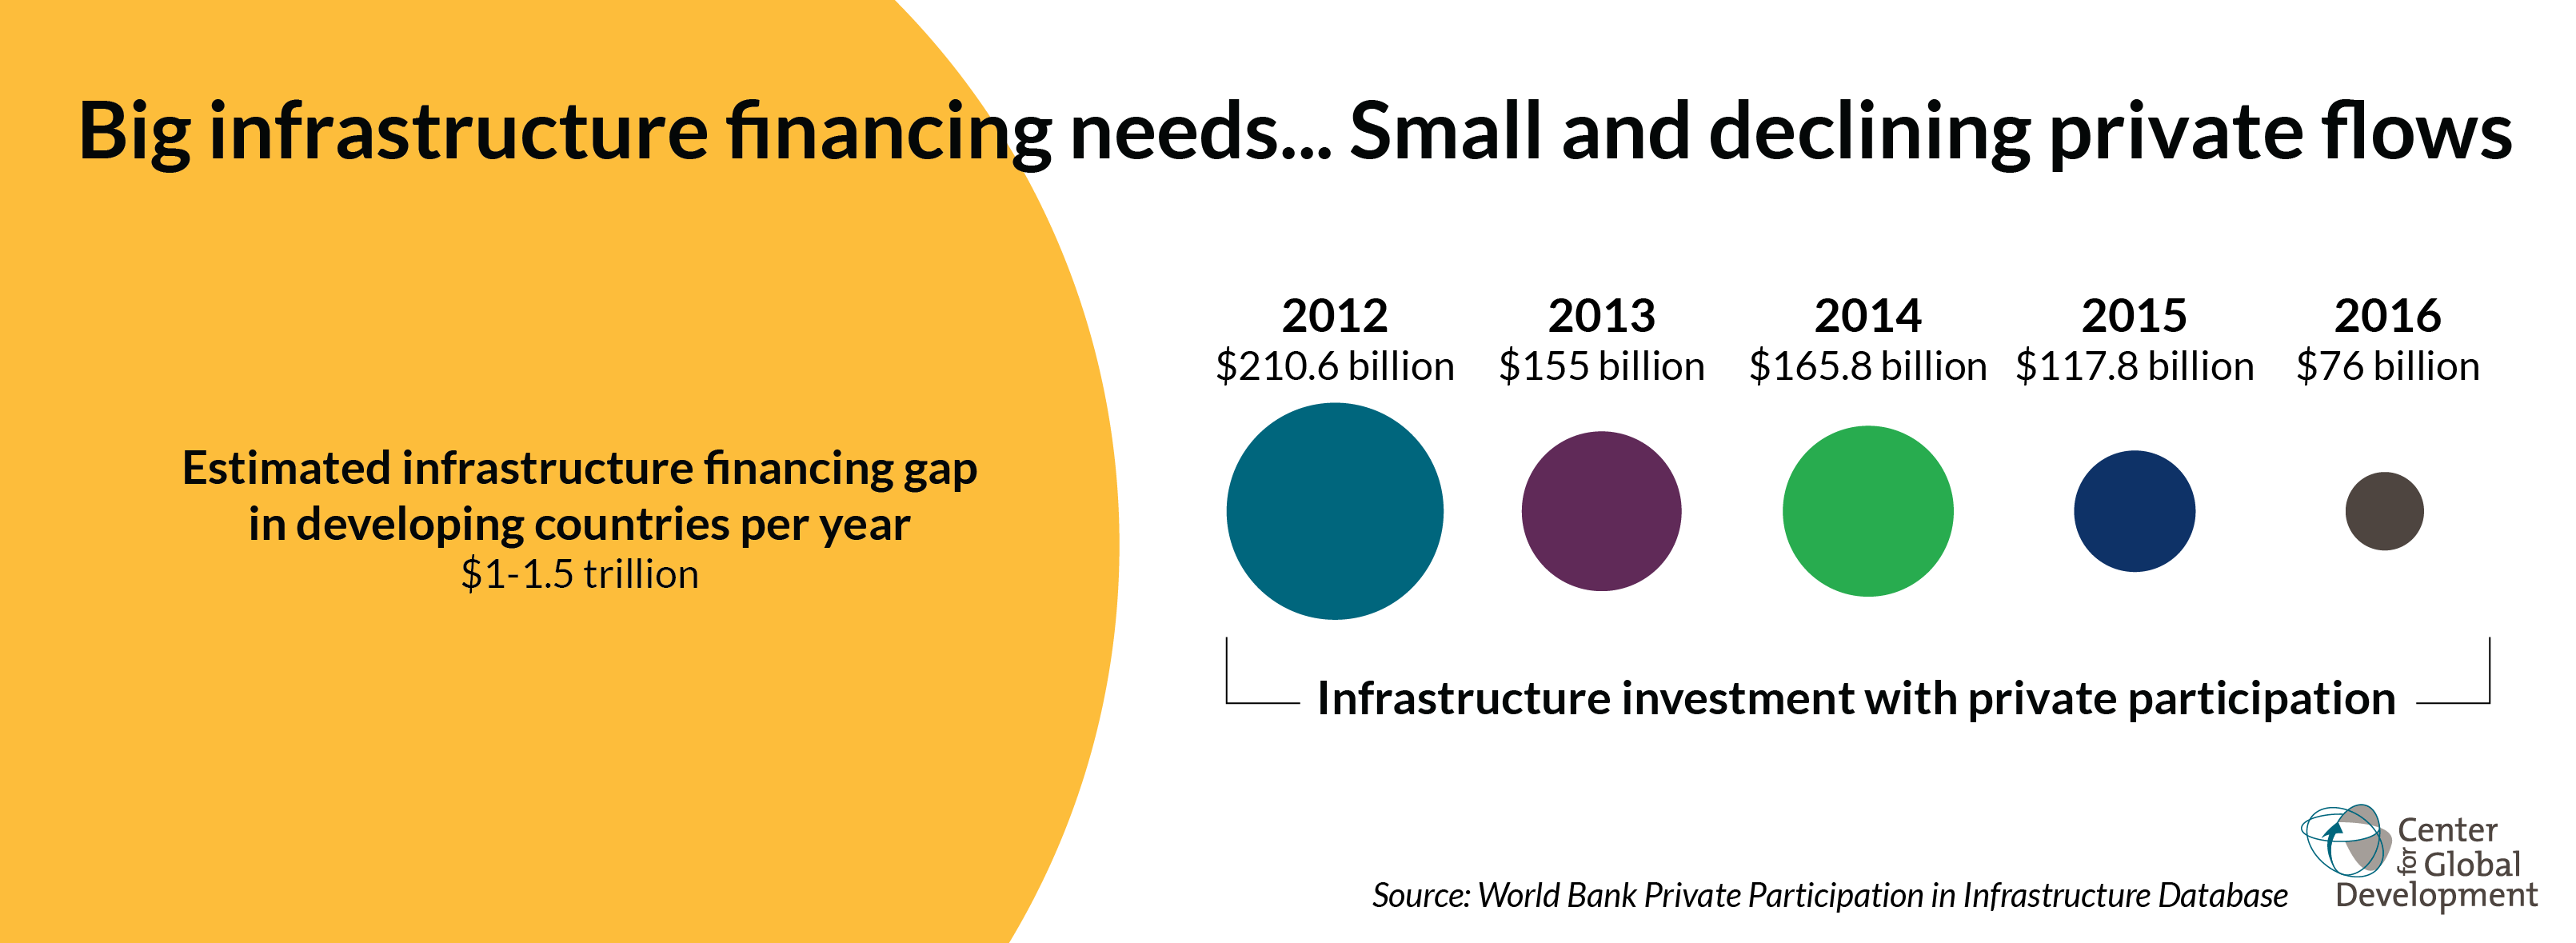 billions to trillions issues on the role of development banks in